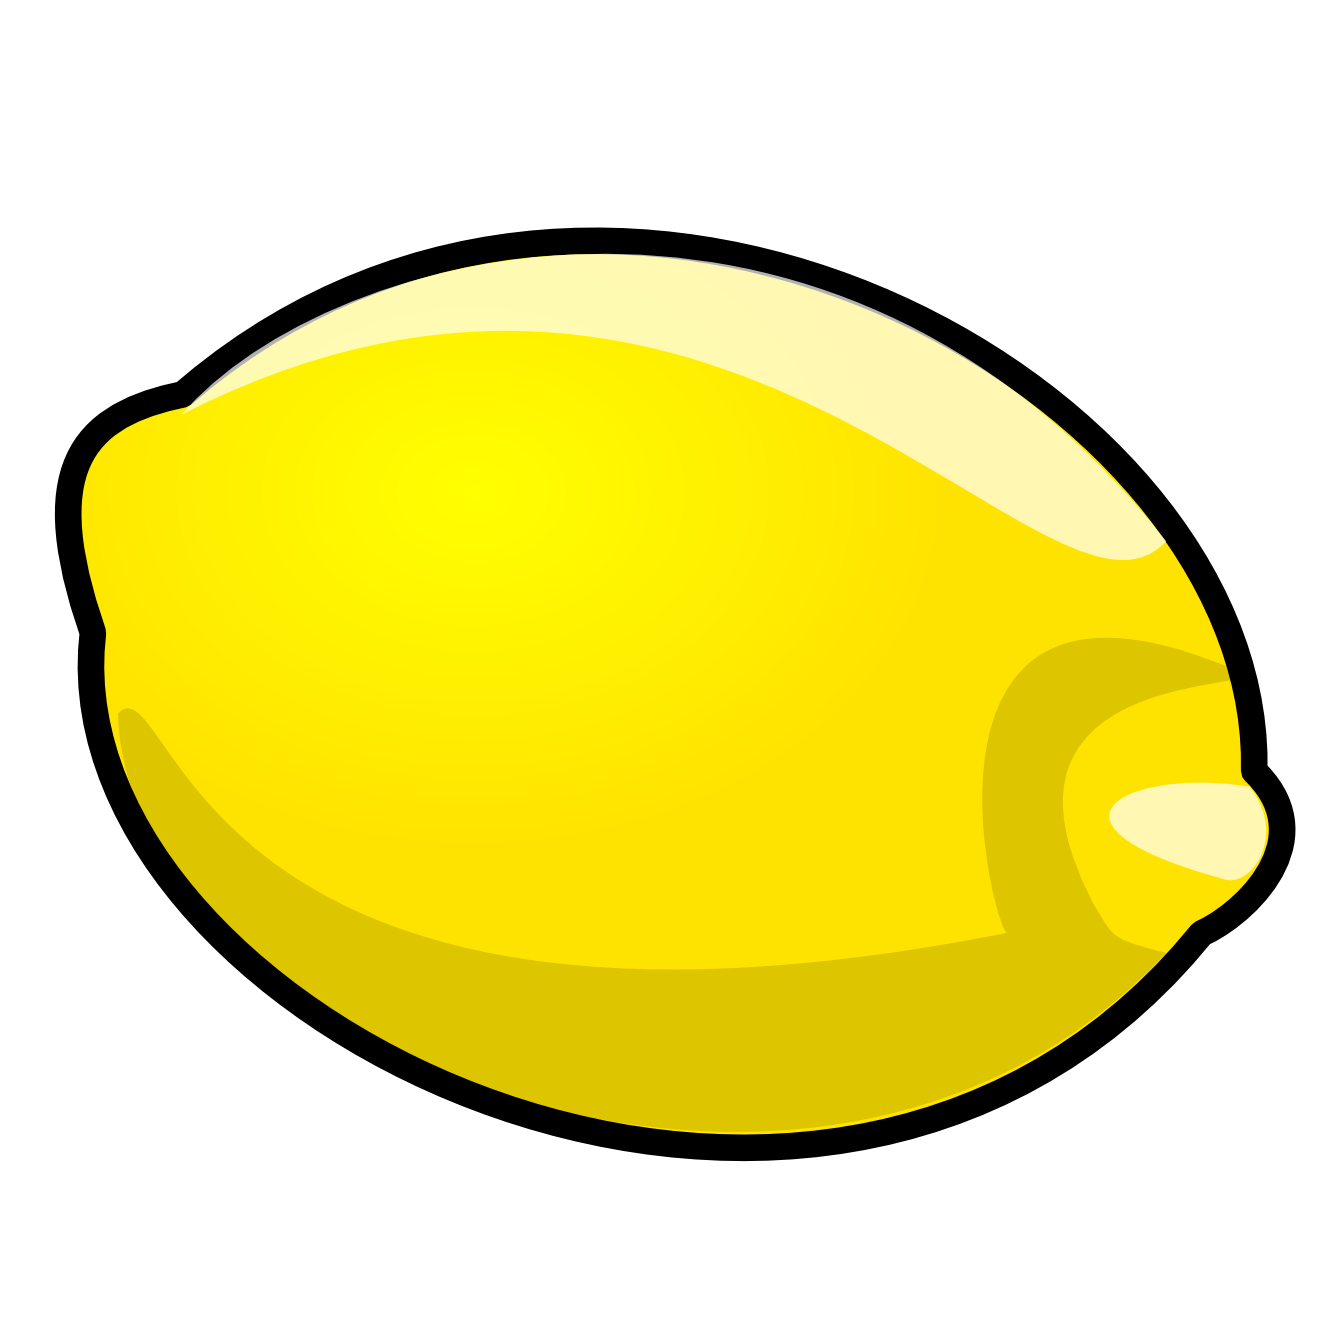 Lemon clipart png. Collection of high